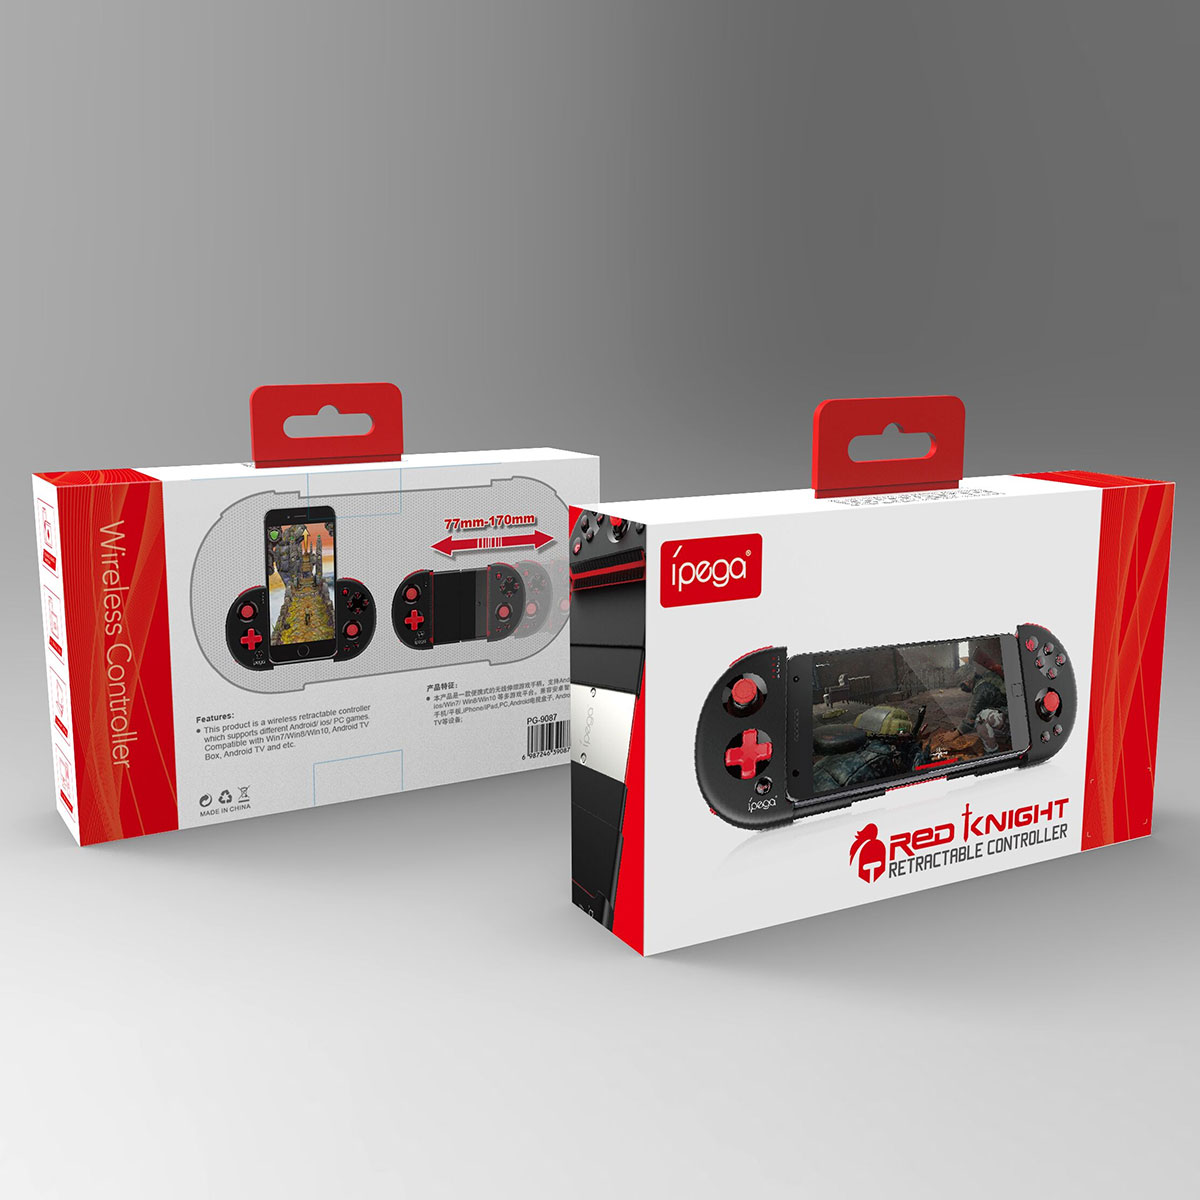 Ipega 9087 Bluetooth stretching gamepad